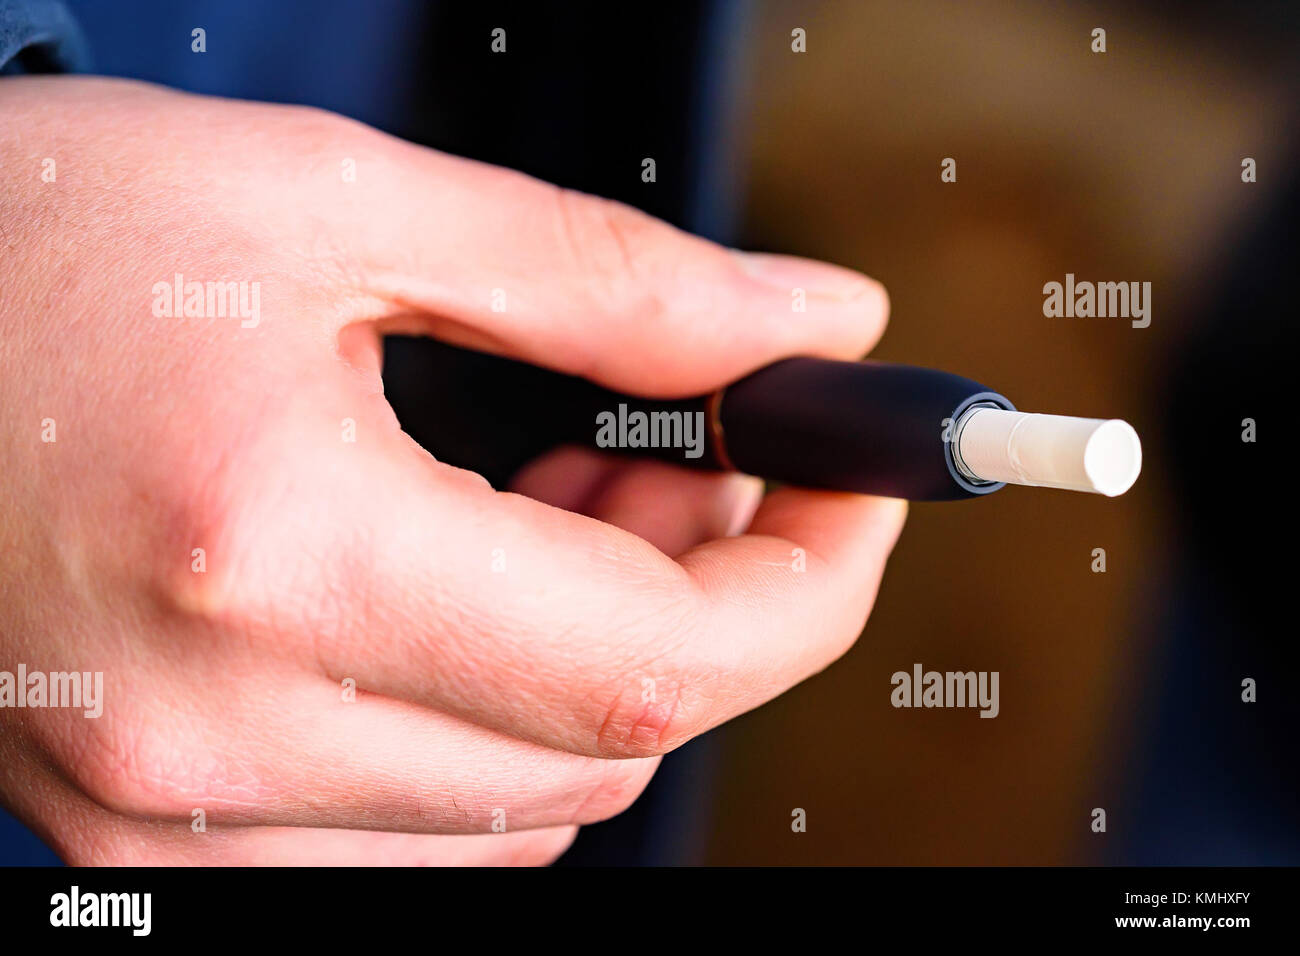 Tobacco heating system or electronoc cigarette - Stock Image